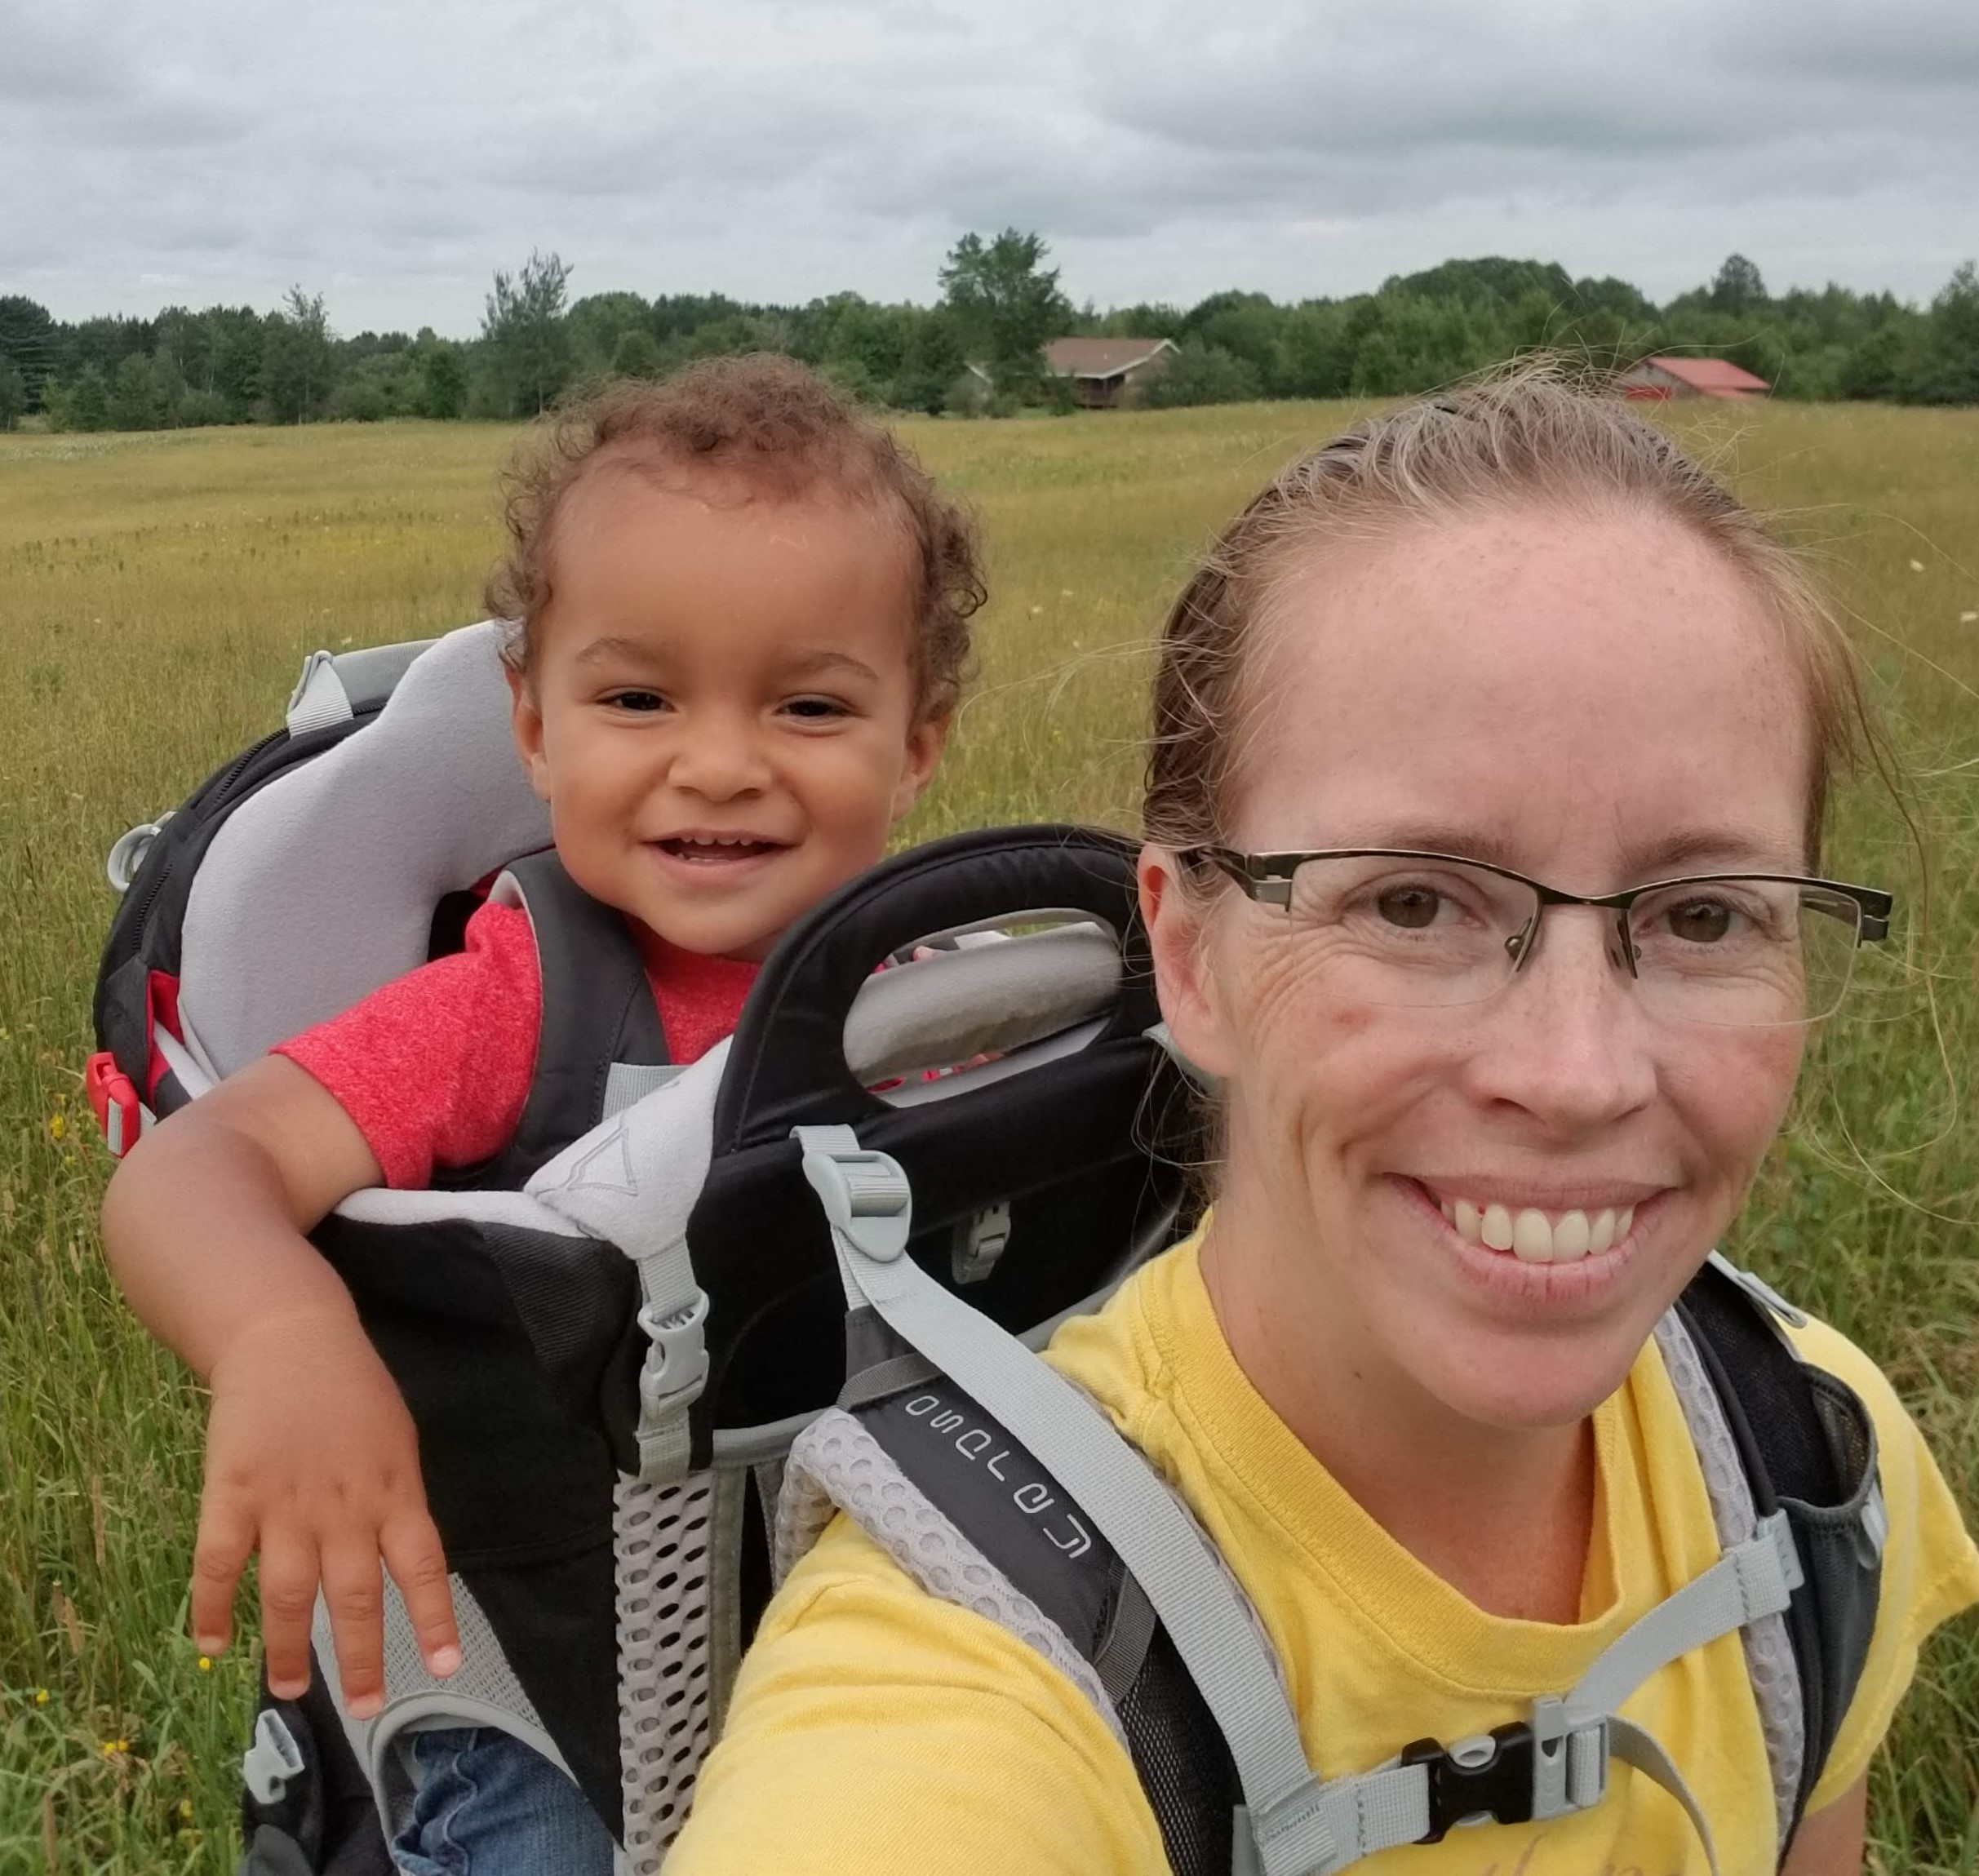 lauren and leo out for a hike on our land